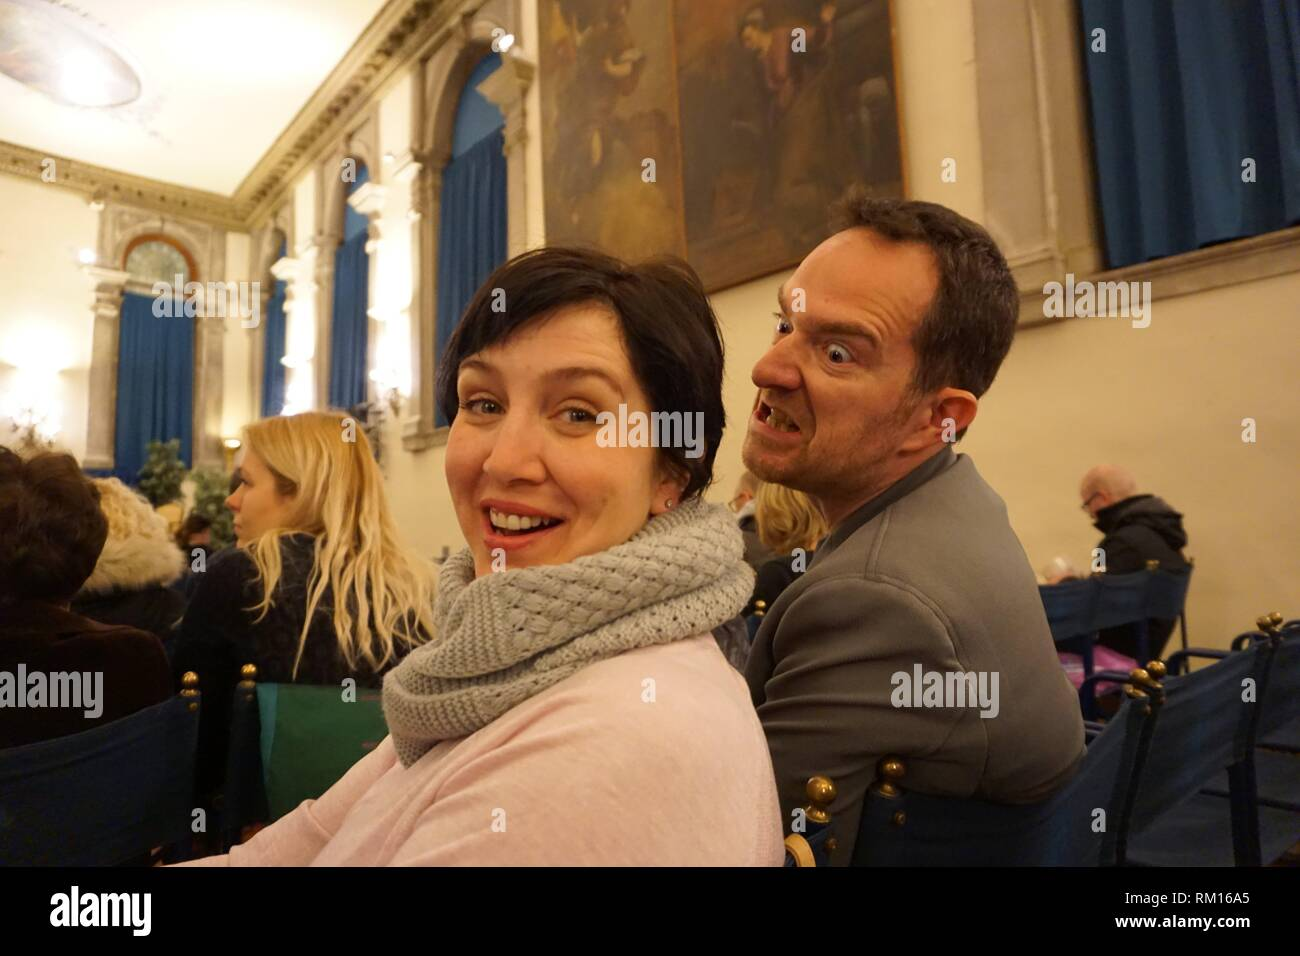 Angry for some reason at an opera concert. Scuola di San Teodoro. Venice, Venero, Italy, Europe. - Stock Image